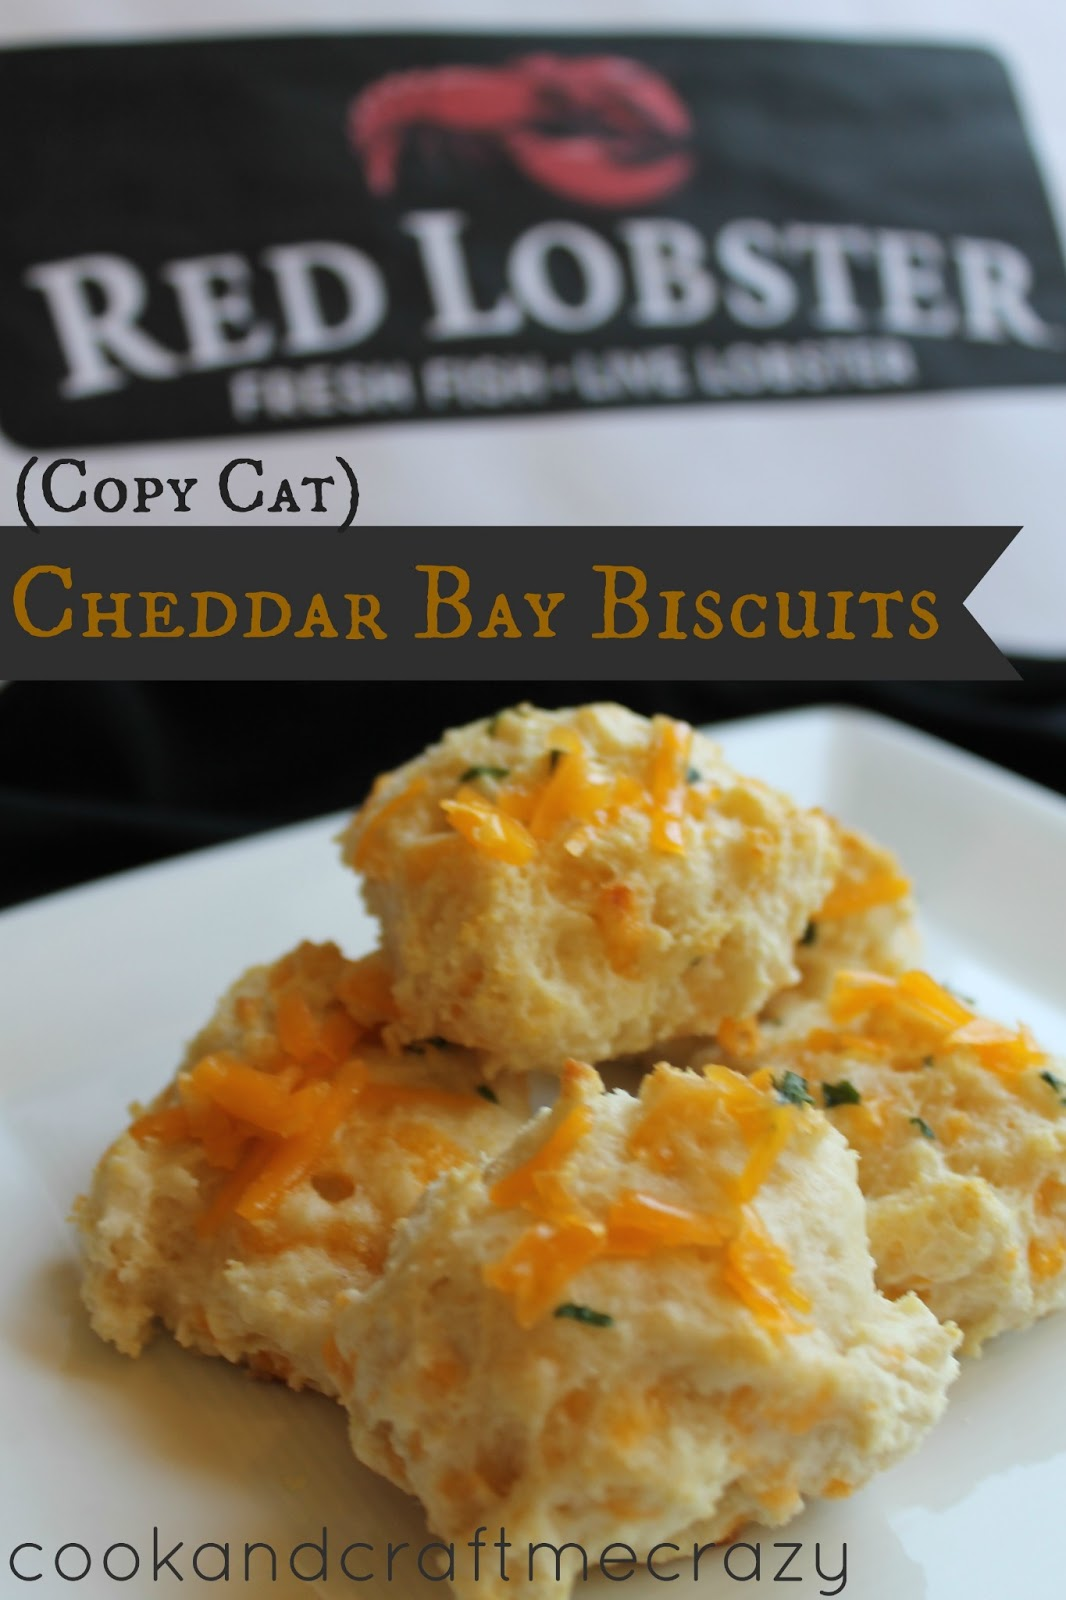 Cook and Craft Me Crazy: Red Lobster Cheddar Bay Biscuits - (Copy Cat)